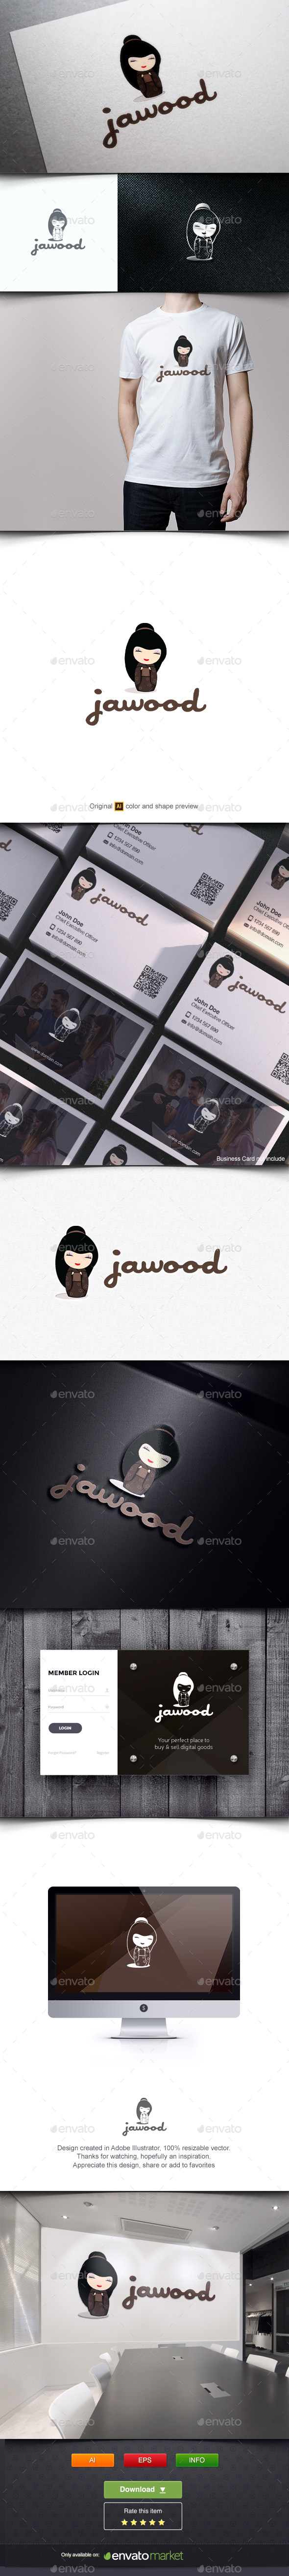 Japanese Doll Wood Crafts - Humans Logo Templates